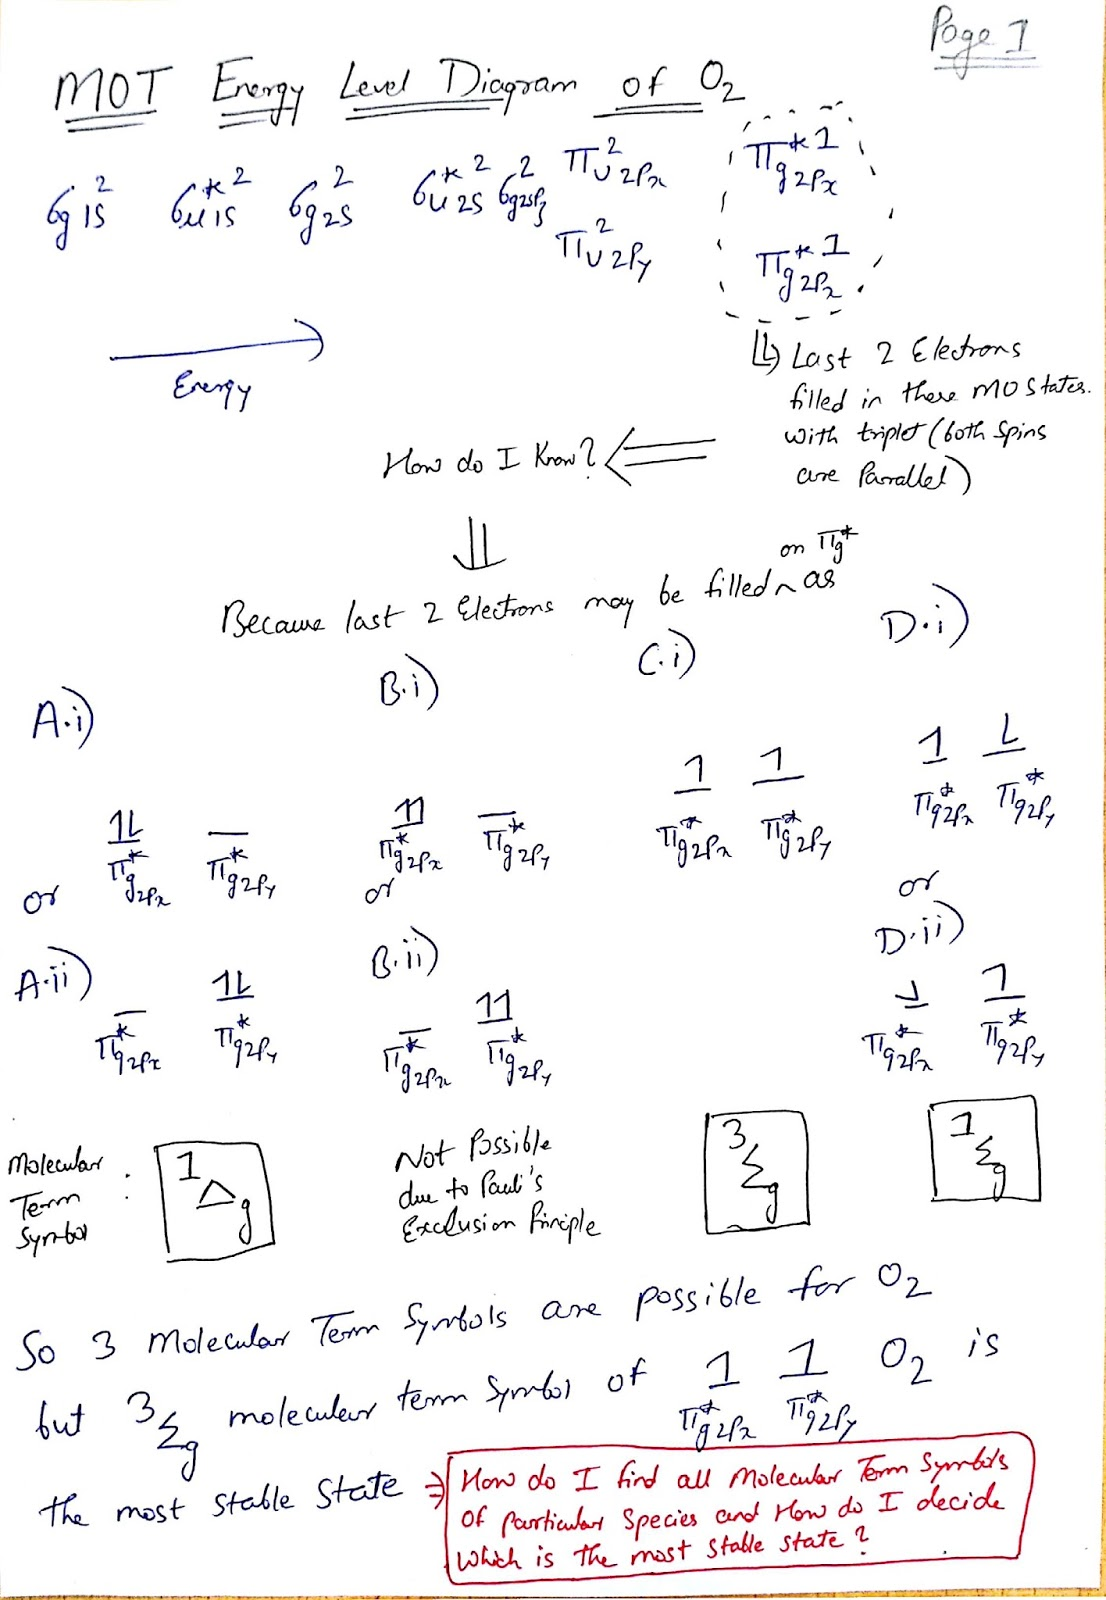 Chemistry For Csir Netgate And Explains Term Symbols And Selection